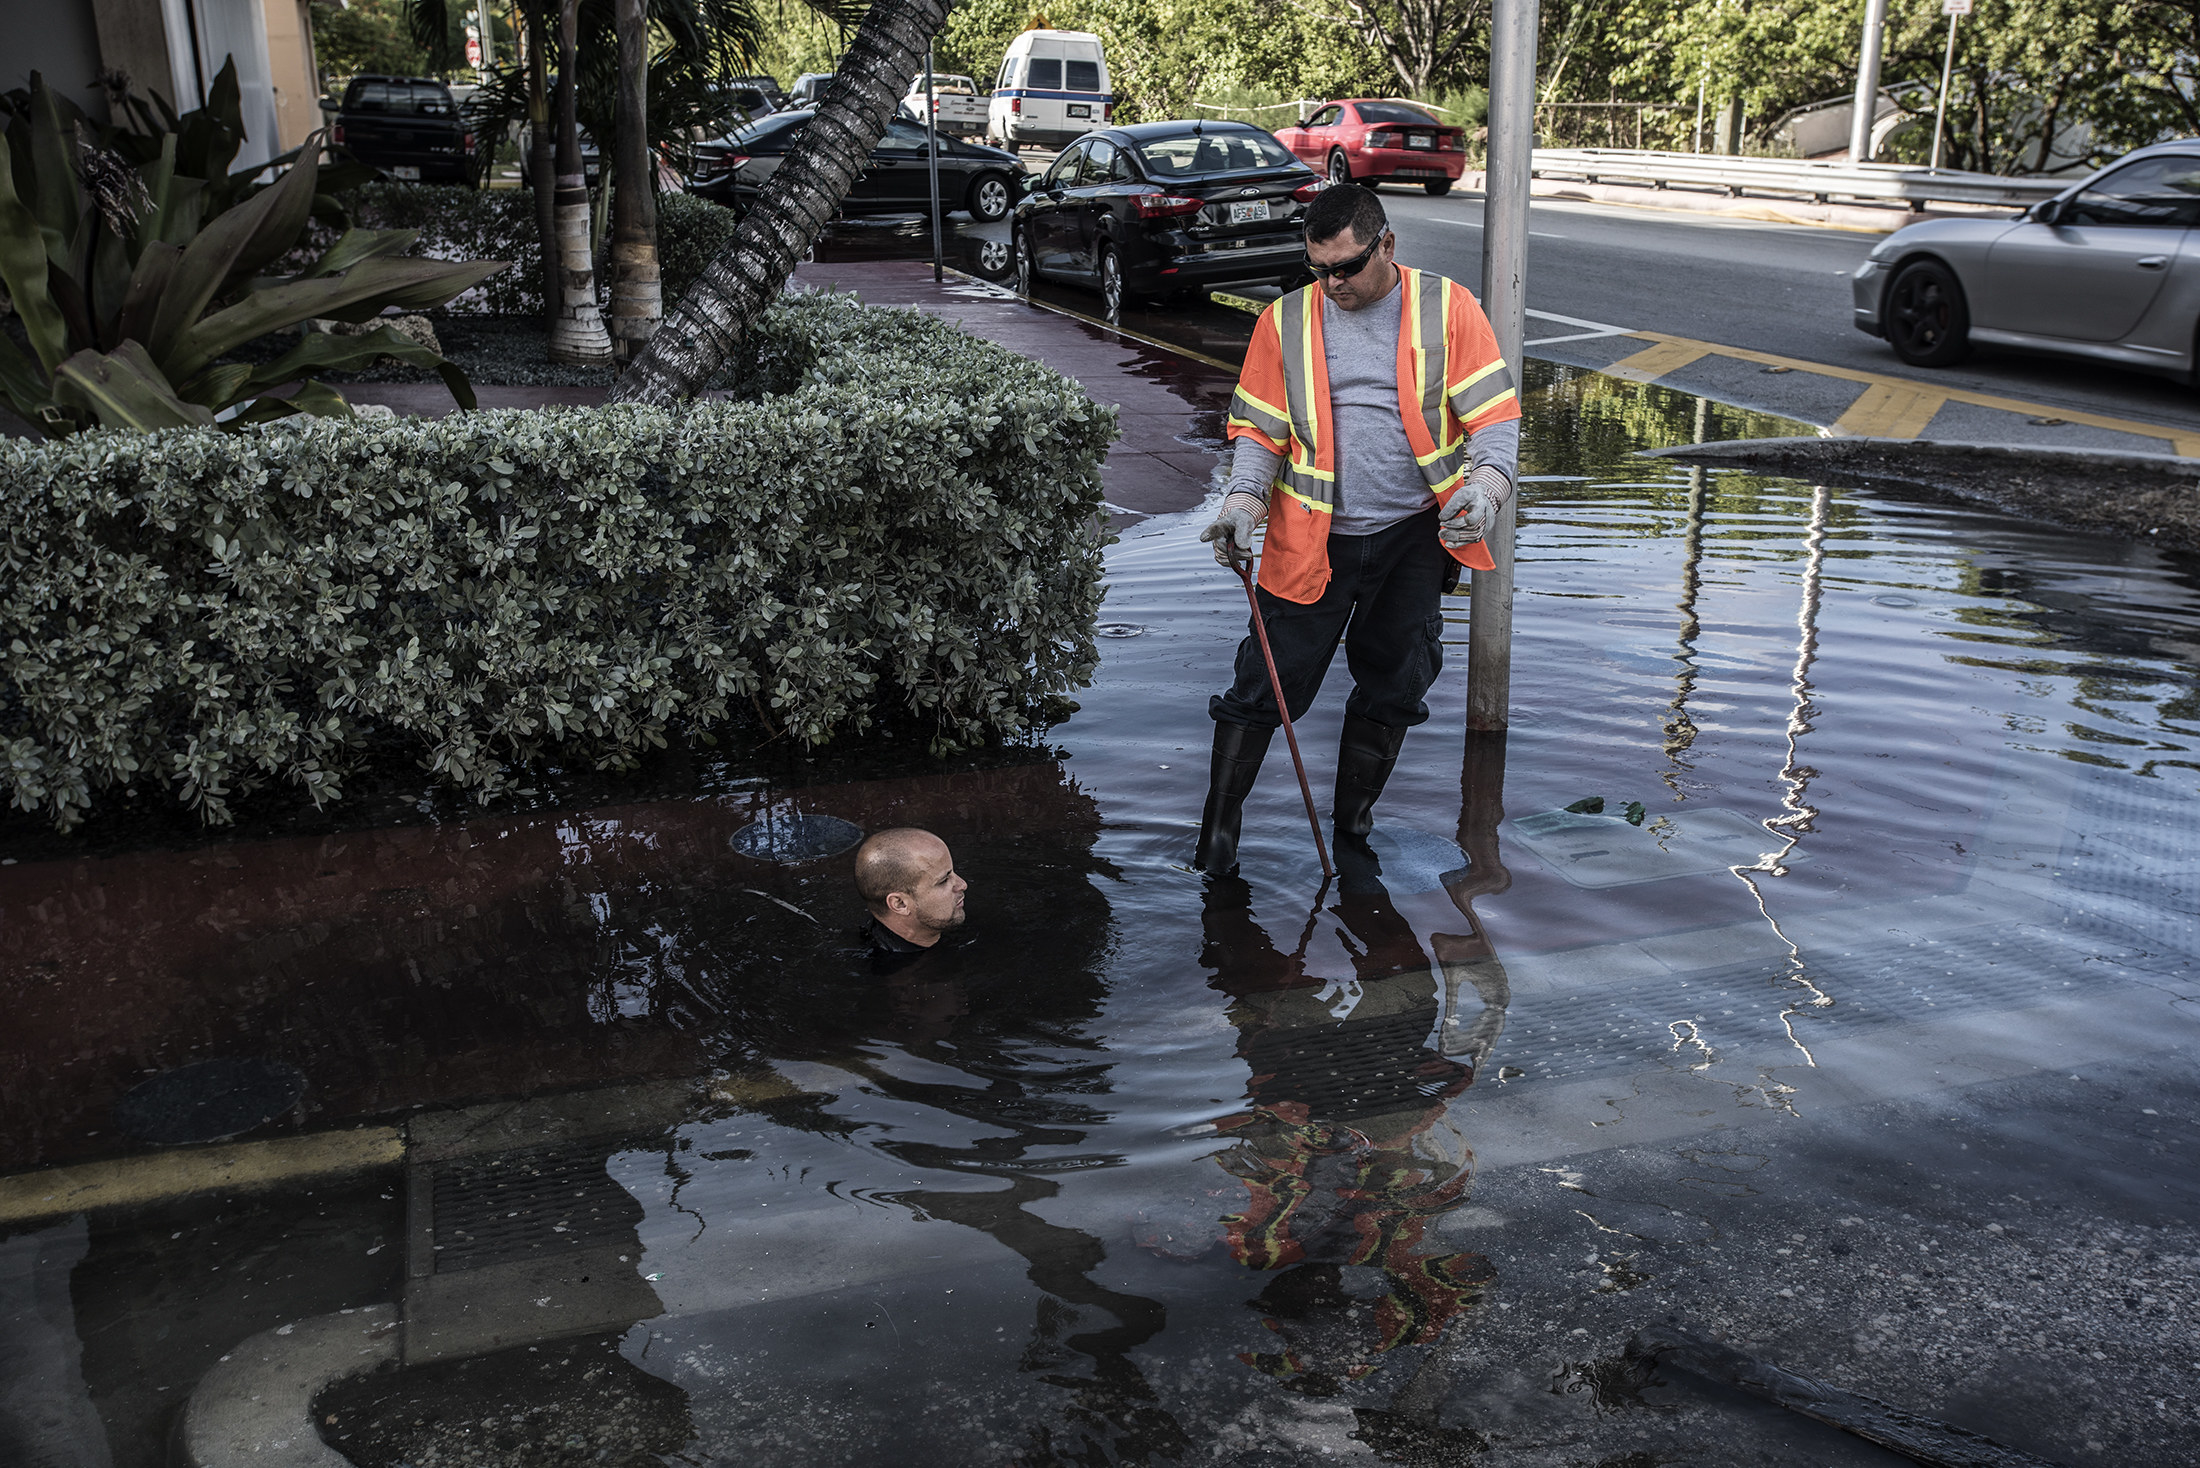 A worker mostly submerged in water with only his head showing on the street, next to another worker standing next to him with water up to his ankles